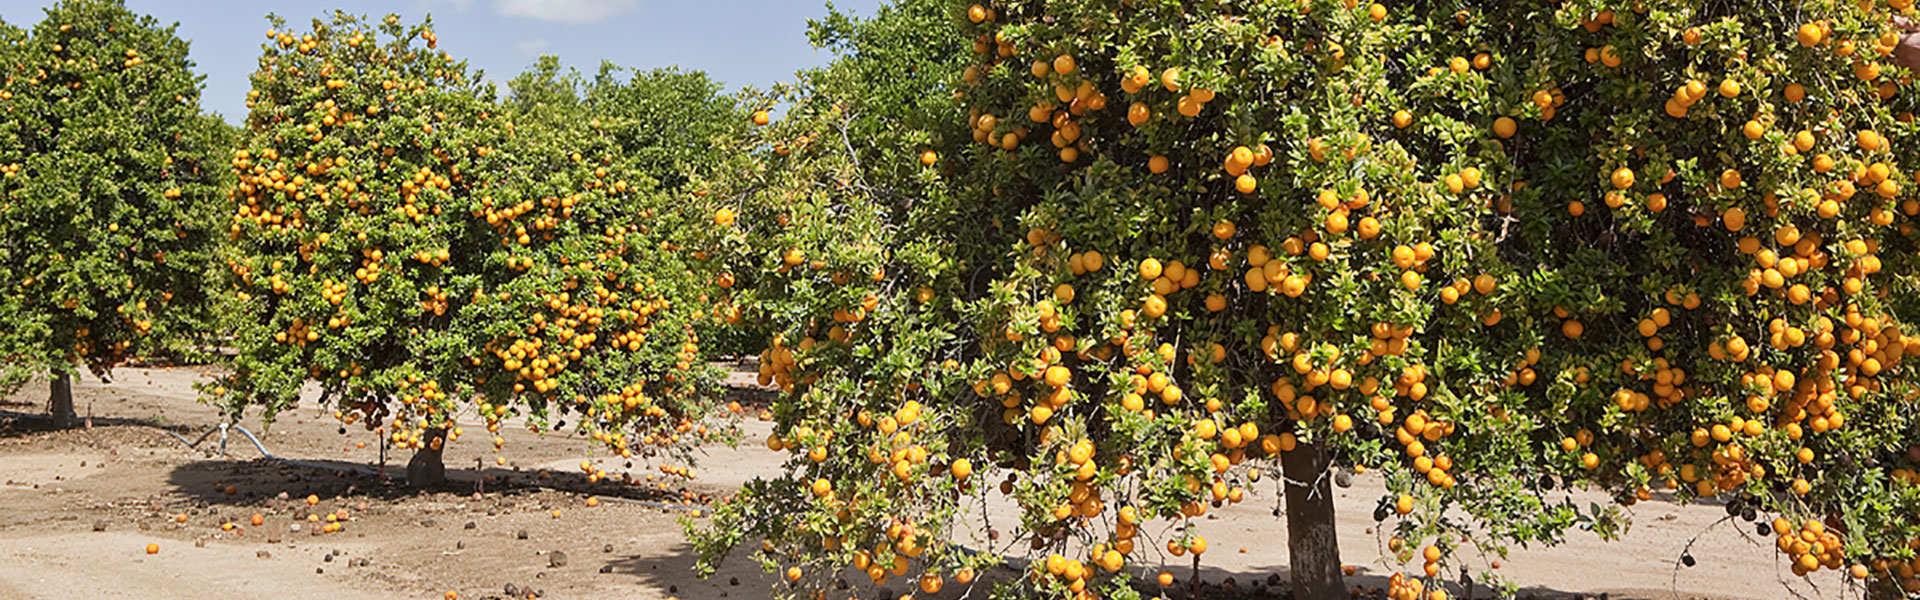 Citrus grove at the University of California, Riverside (UCR)